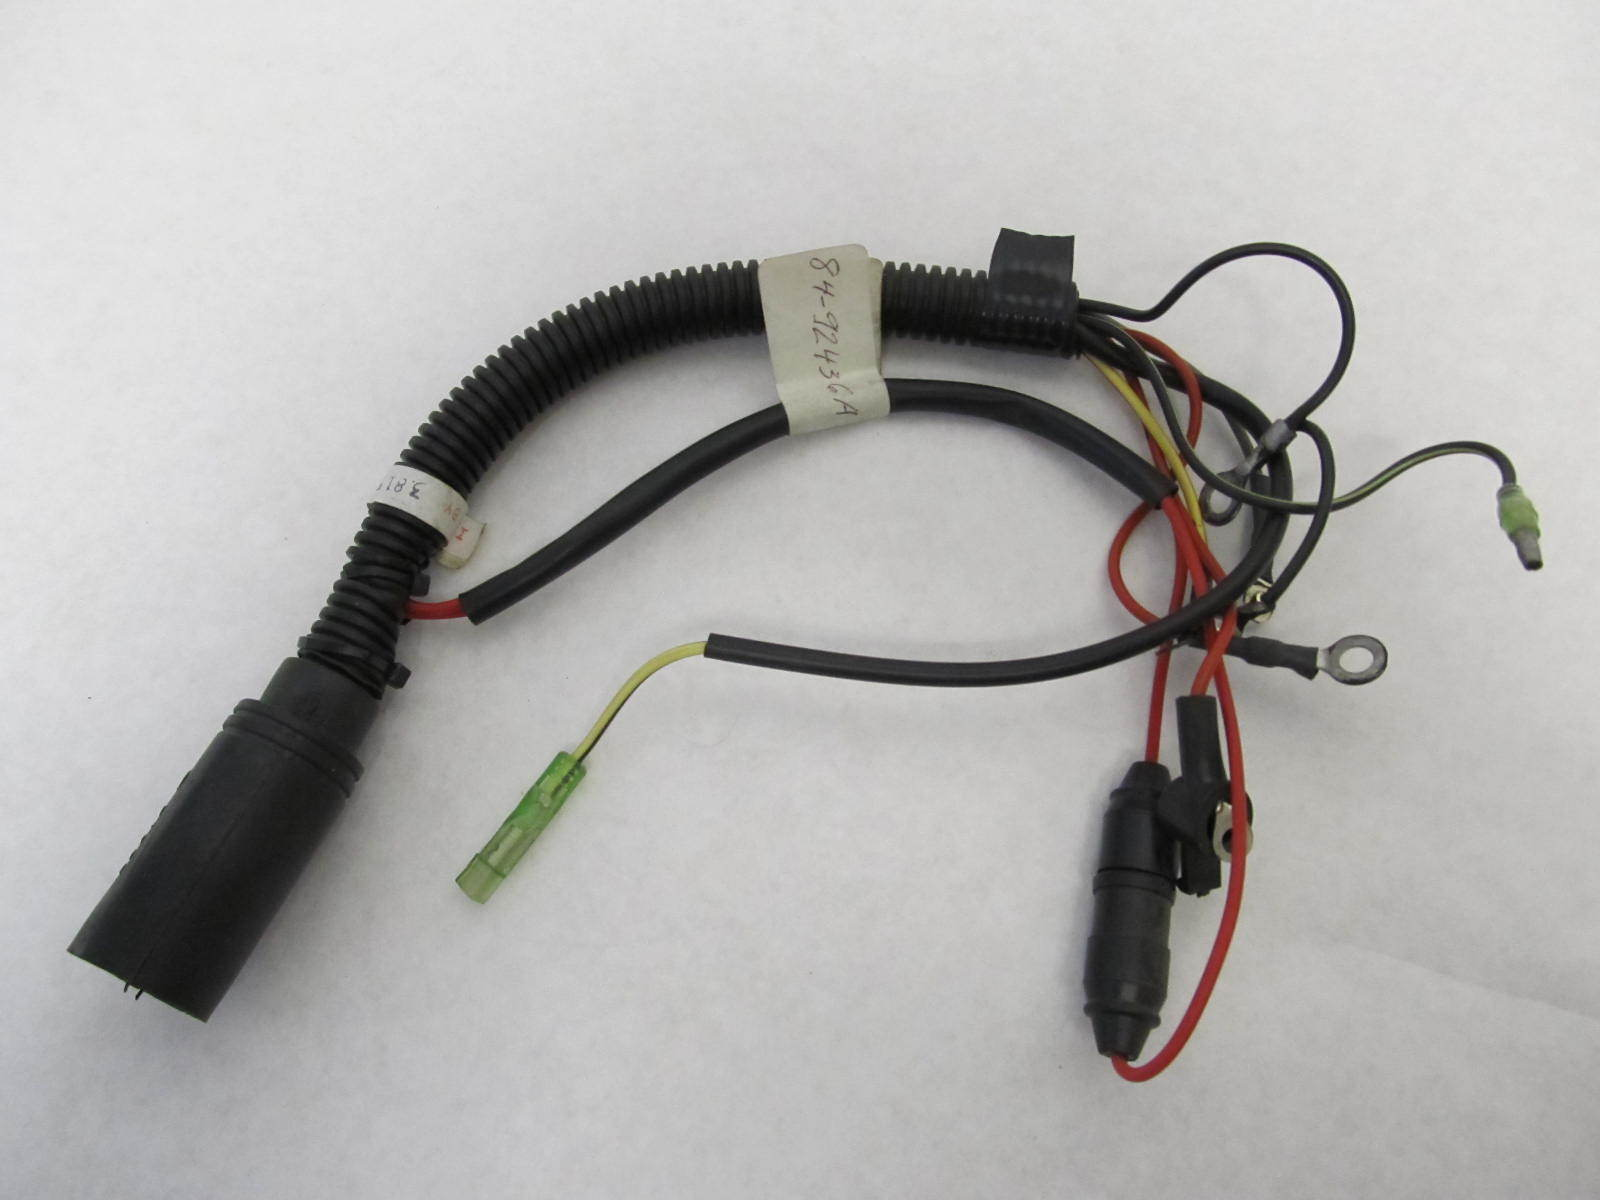 mercury outboard tachometer wiring harness 84-92436a9 engine wiring harness mercury mariner 15-25 hp ... mariner outboard boat wiring harness #13